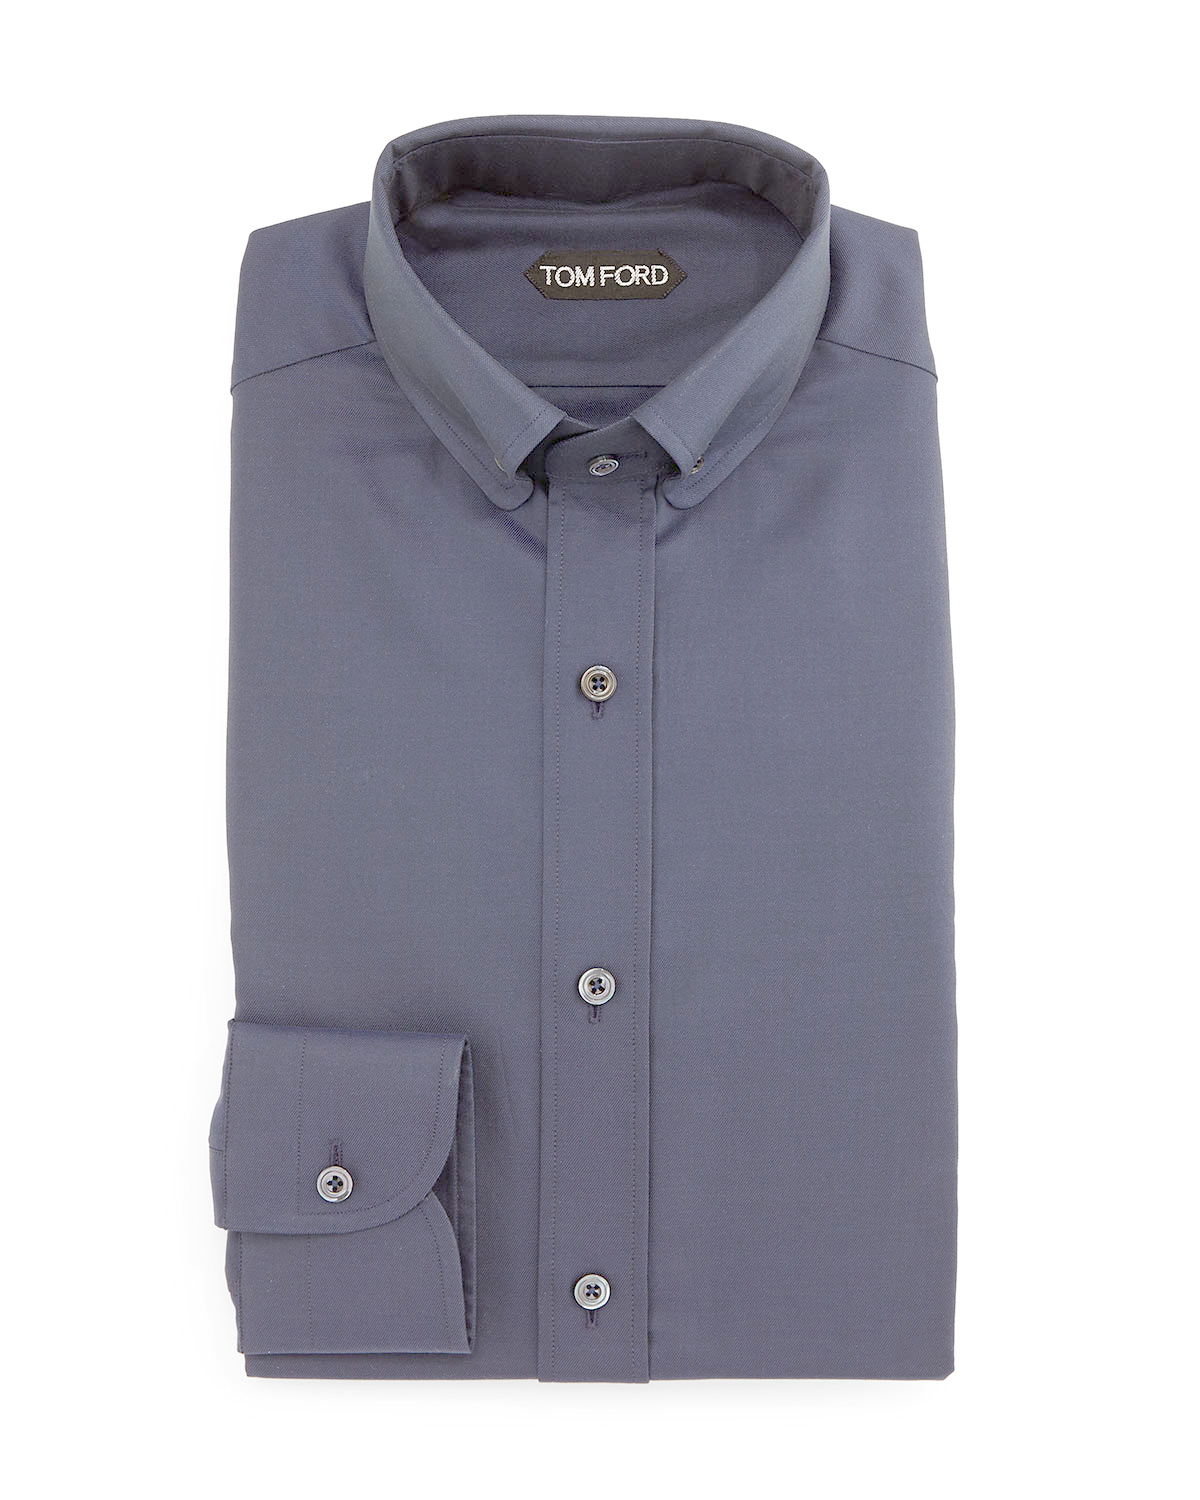 tom ford button down collar solid shirt in blue for men lyst. Black Bedroom Furniture Sets. Home Design Ideas